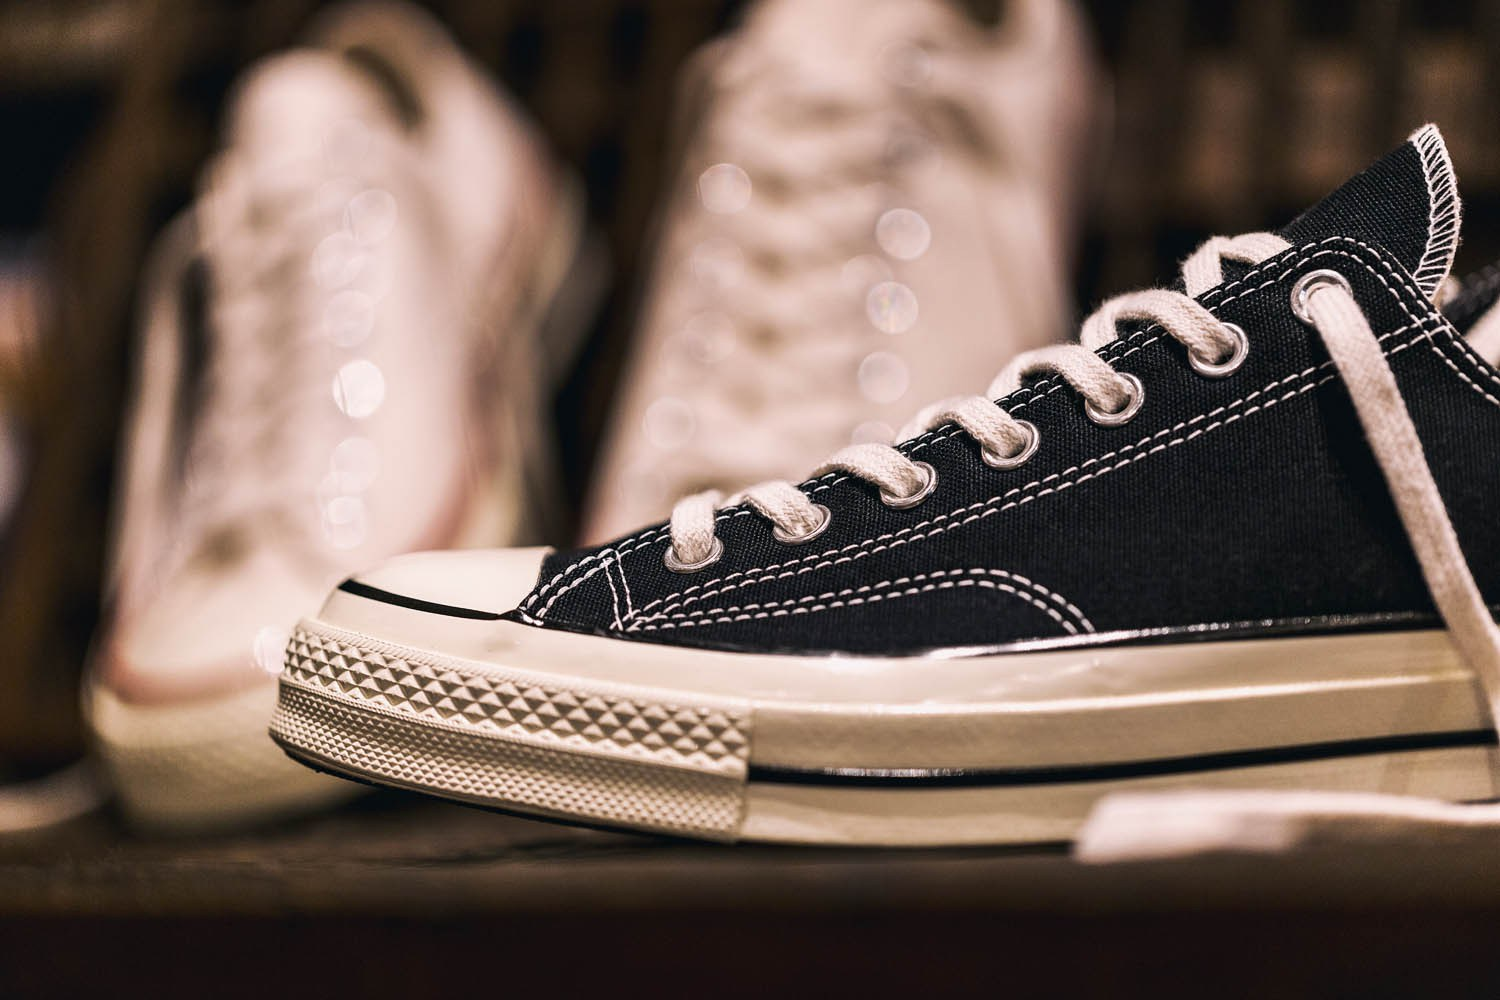 converse-shows-its-colors-with-its-latest-chuck-taylor-all-star-70s-release-21